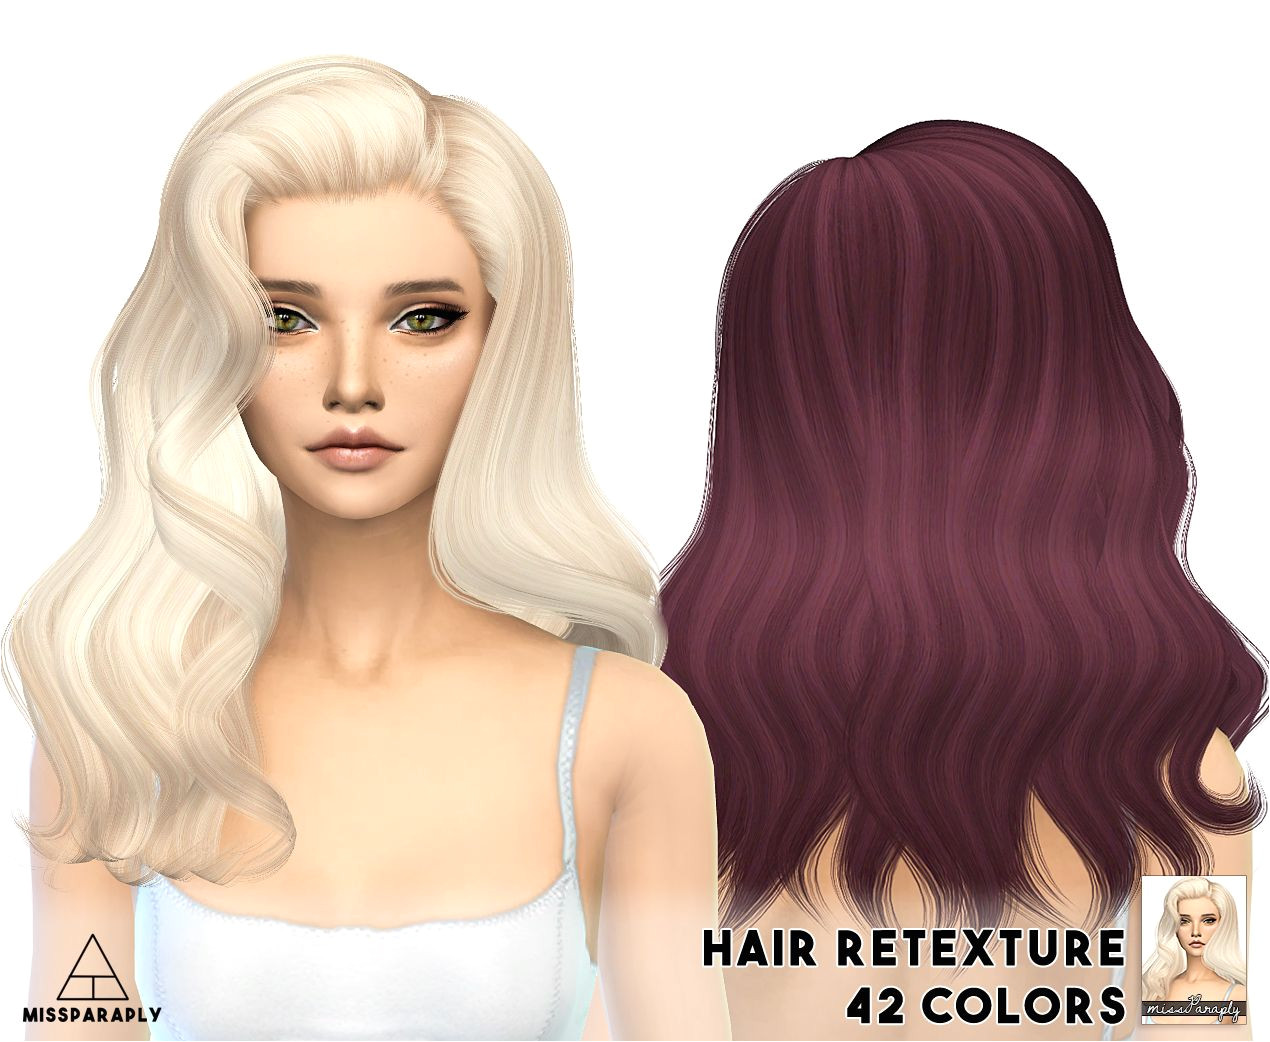 Miss Paraply Alesso s Omen hairstyle retextured Sims 4 Hairs